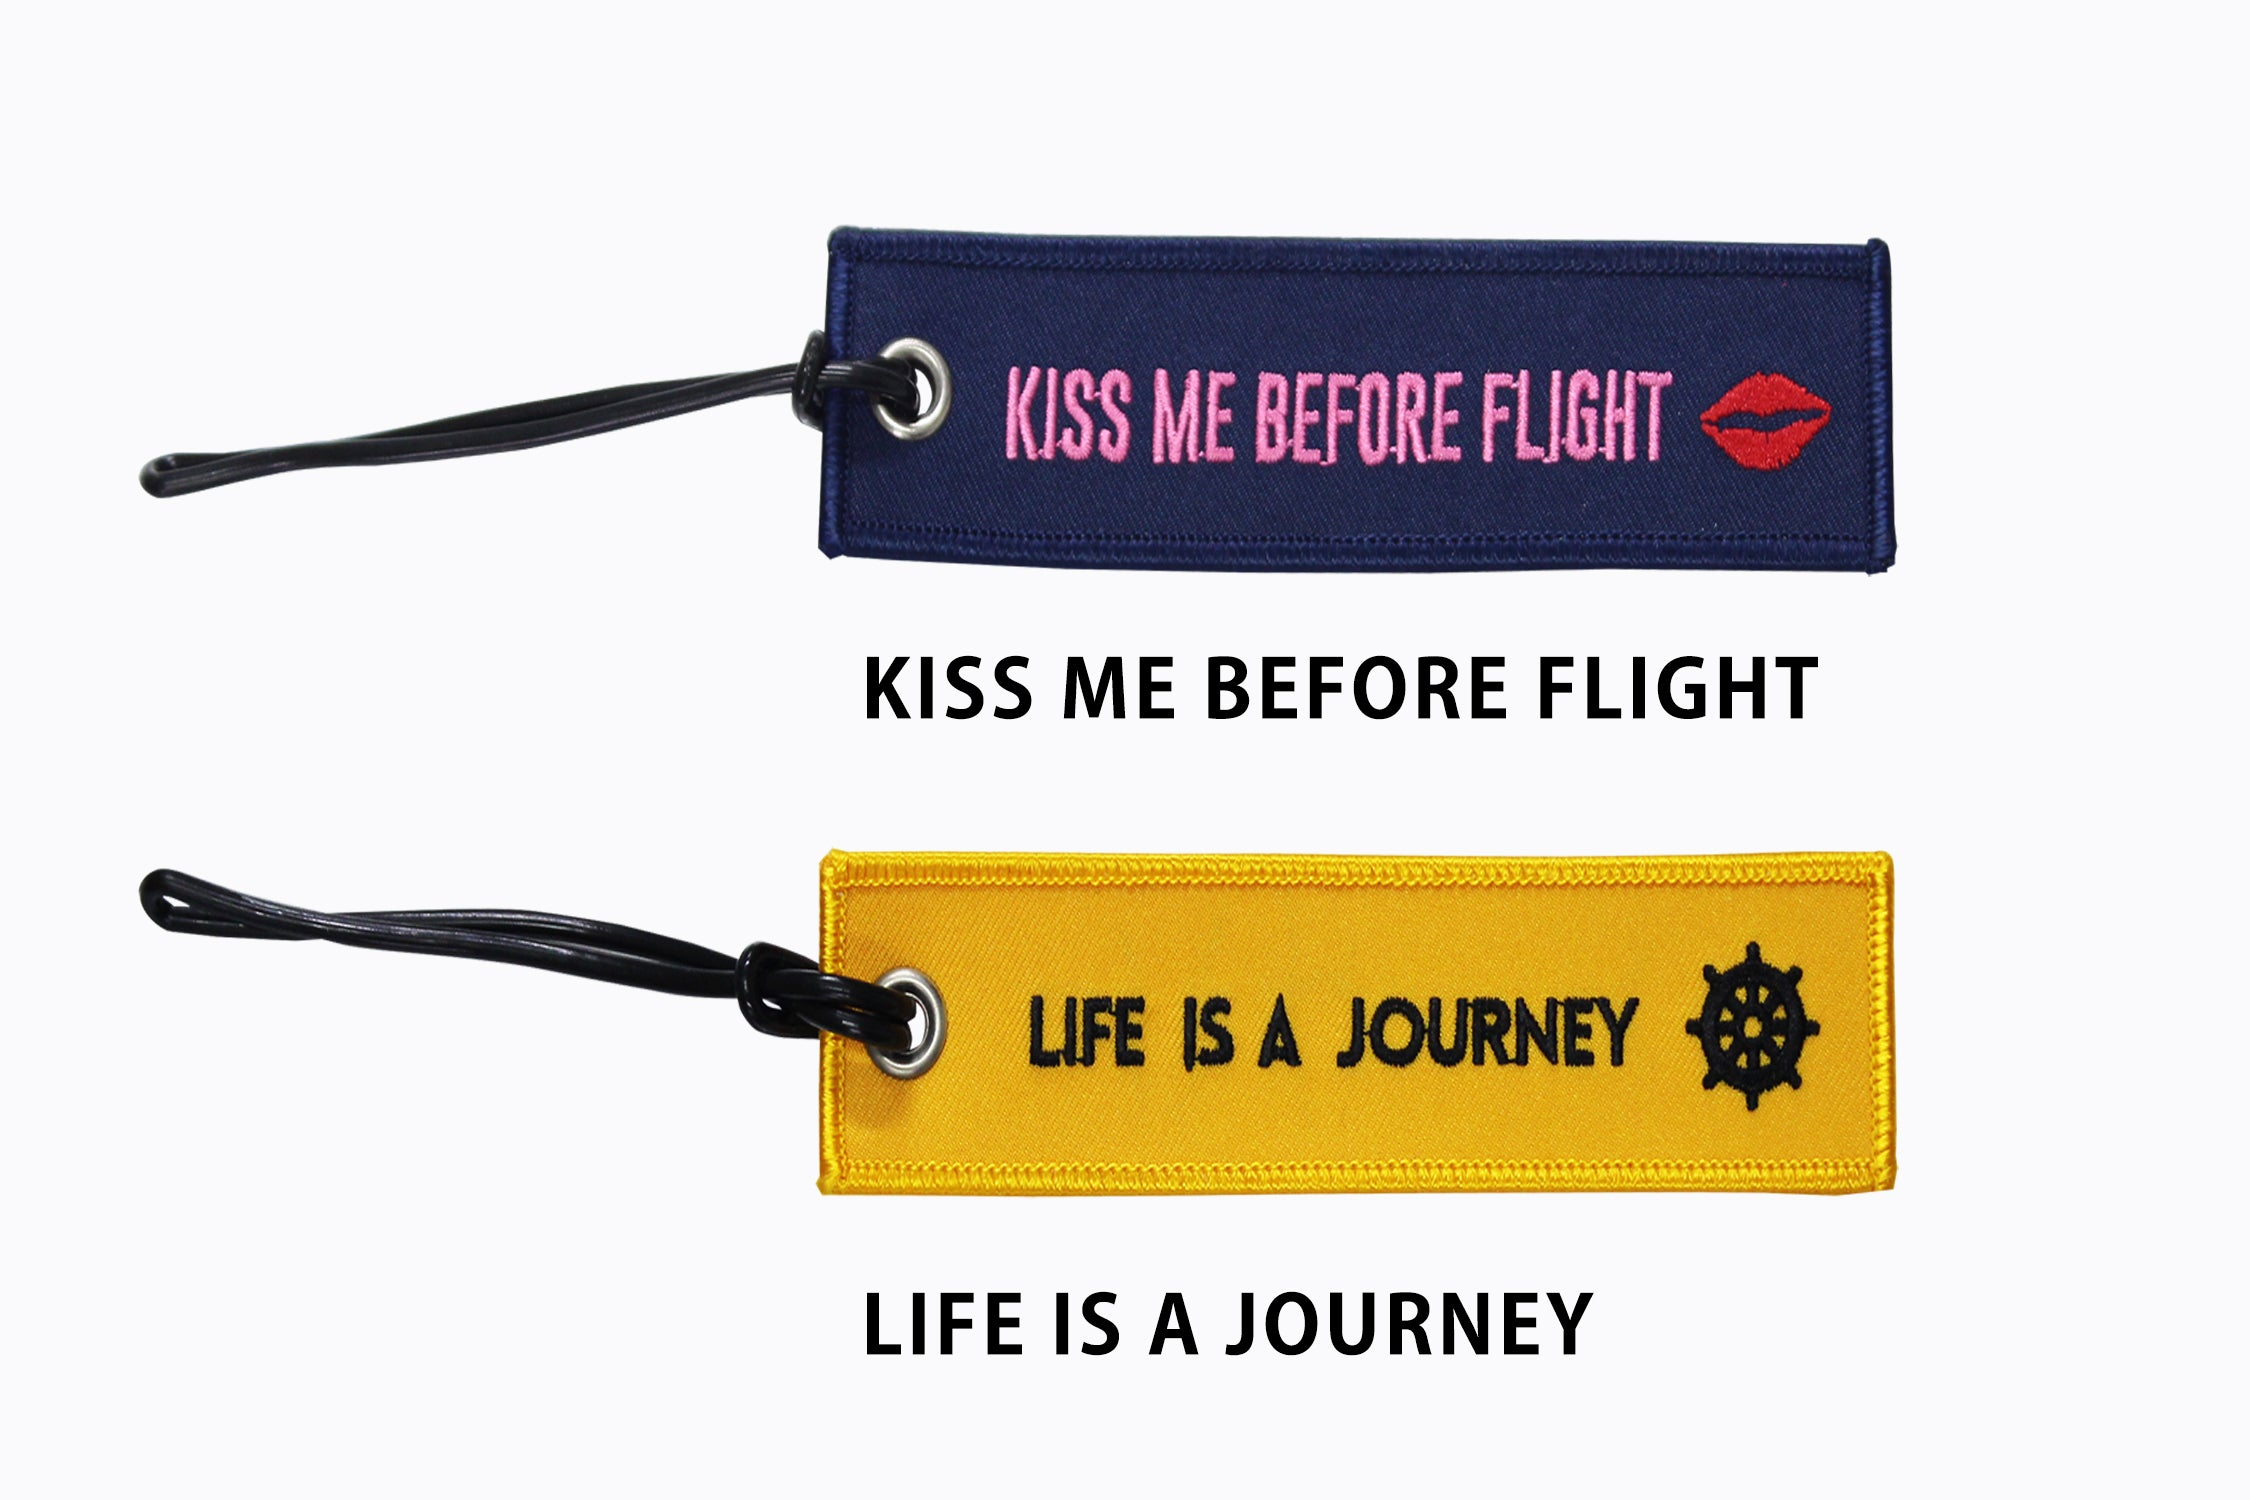 [Lucky Planet] Embroidered  Luggage Name Tags - Life Is a Journey